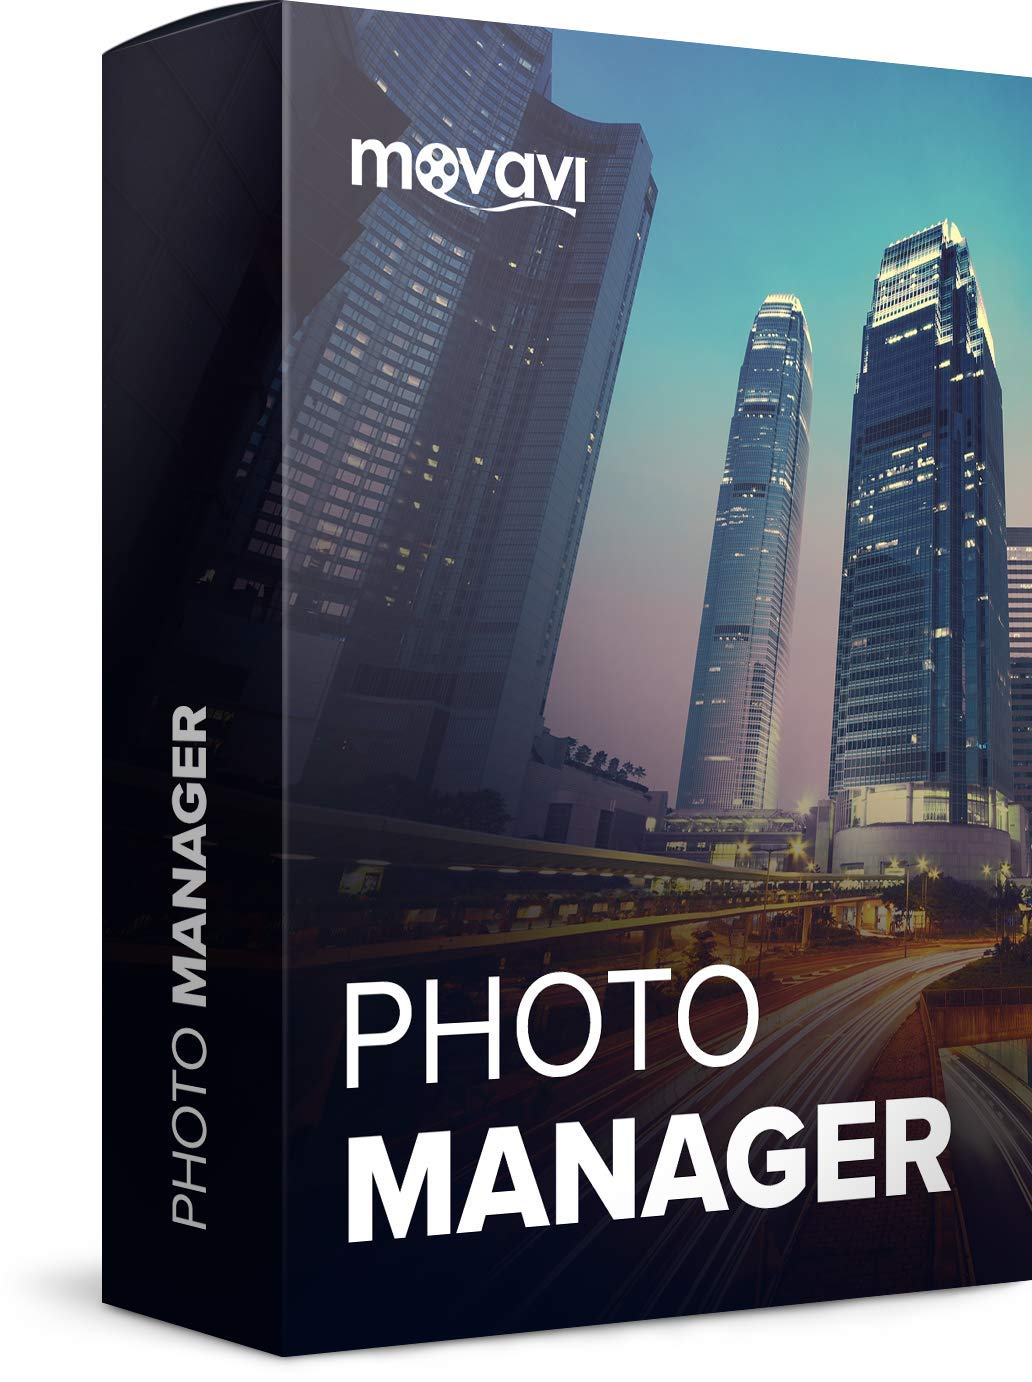 Movavi Photo Manager Personal [PC Download] by Movavi Software Inc